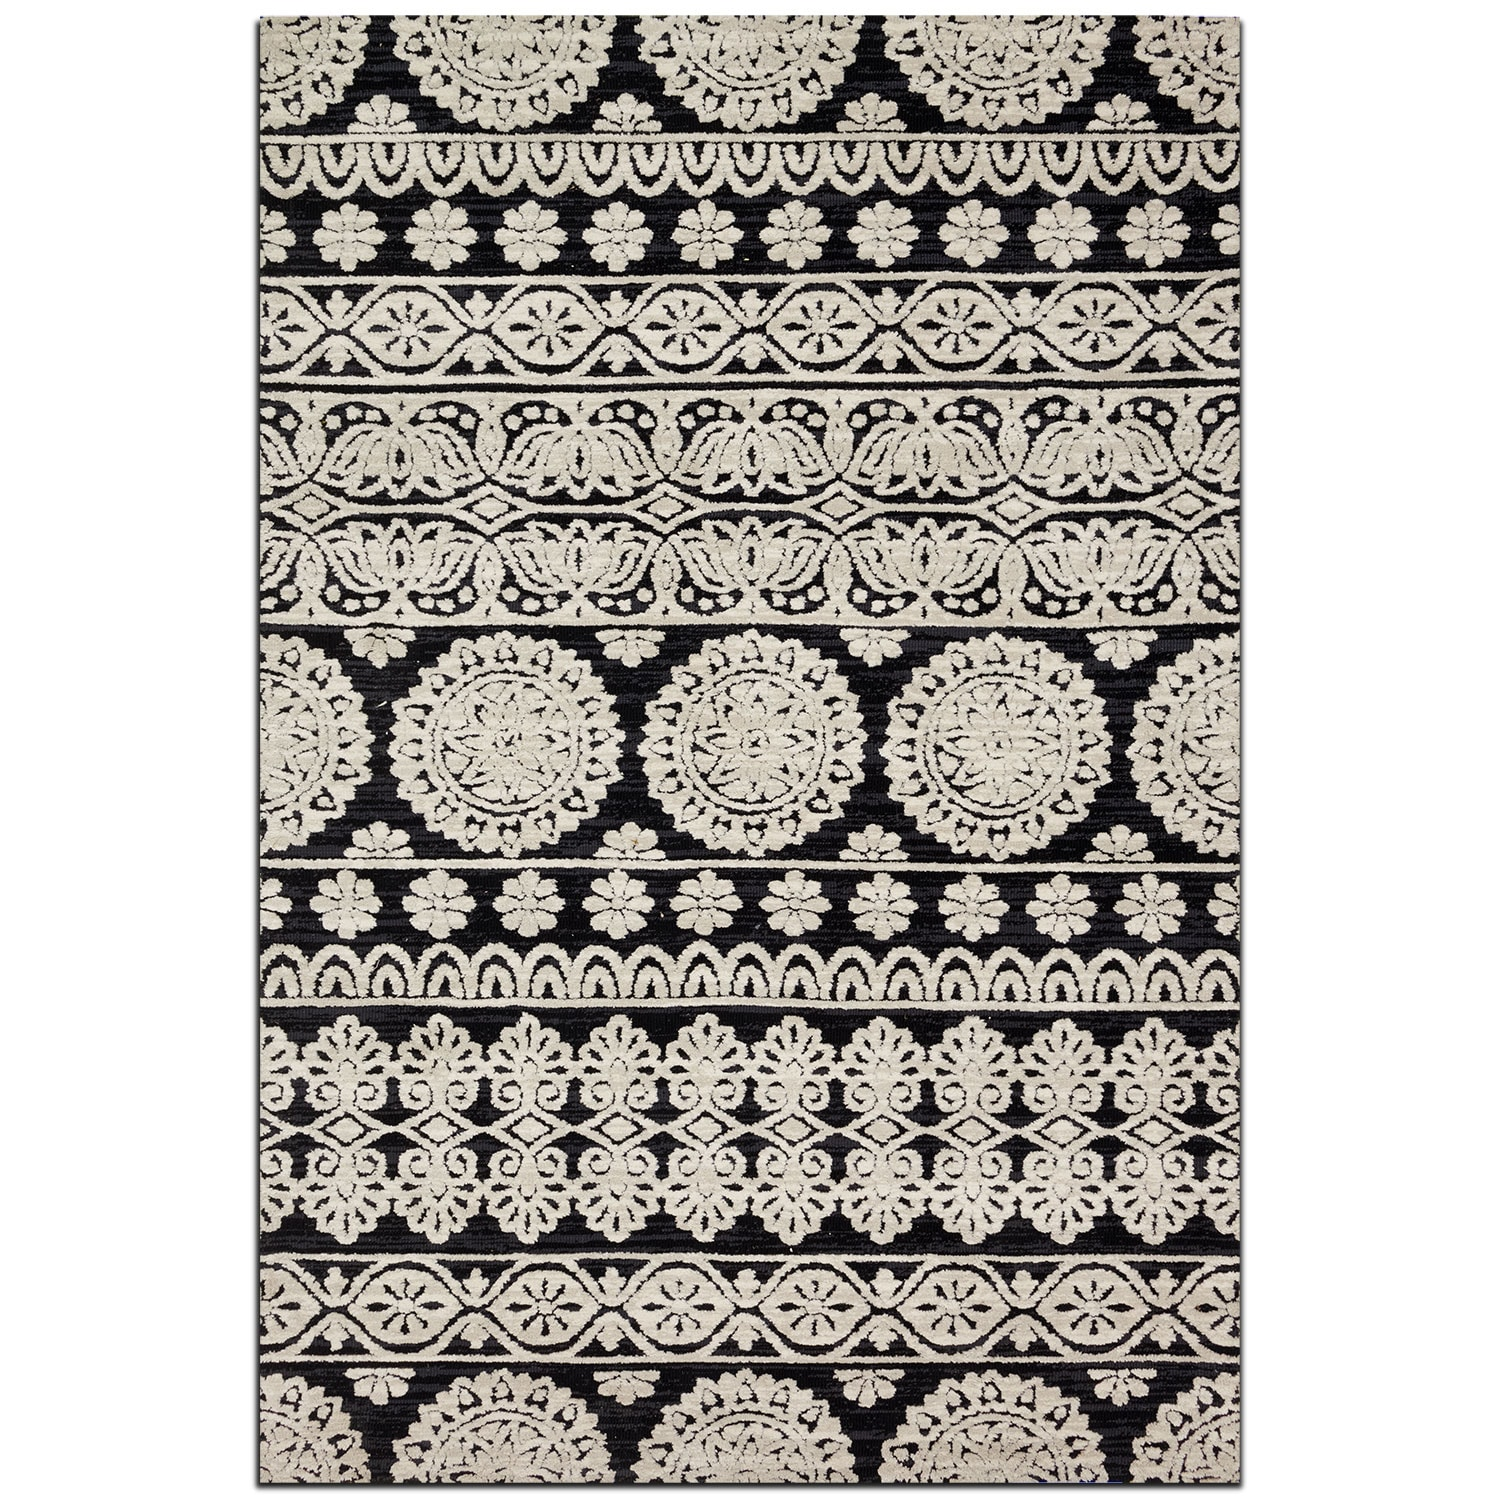 Rugs - Lotus 4' x 6' Rug - Black and Silver